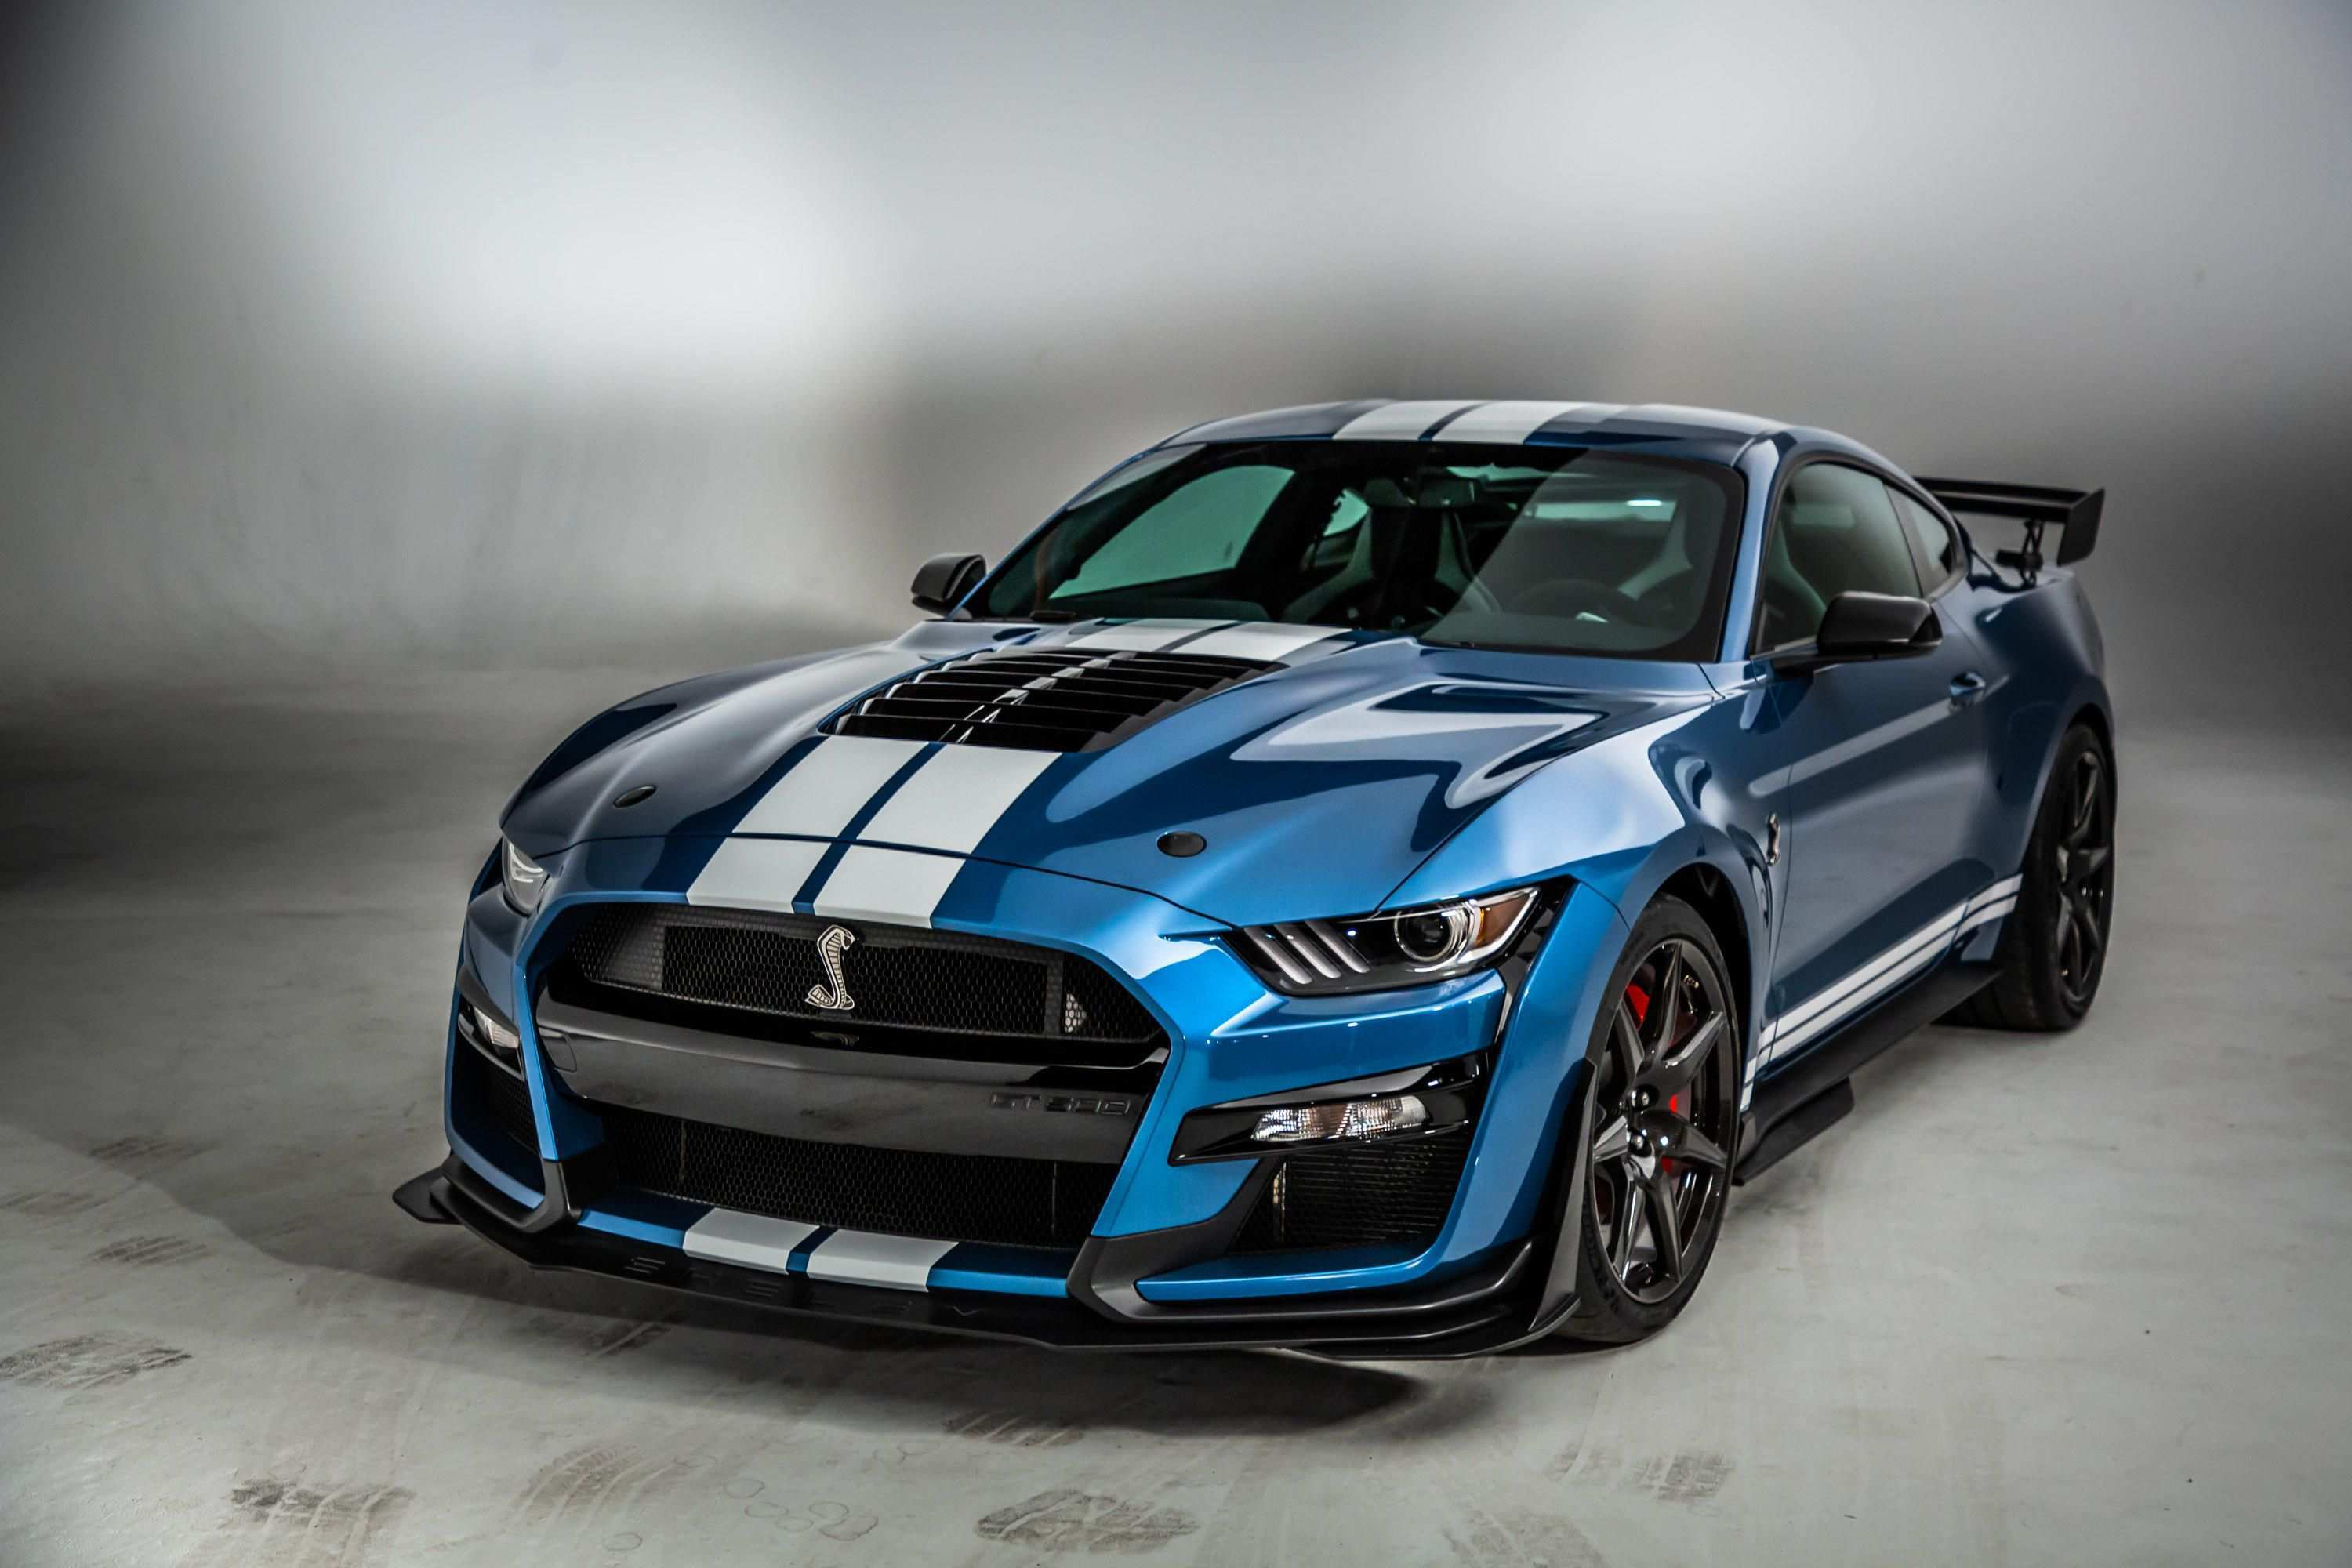 44 Great Ford Mustang Gt 2020 Price and Review by Ford Mustang Gt 2020